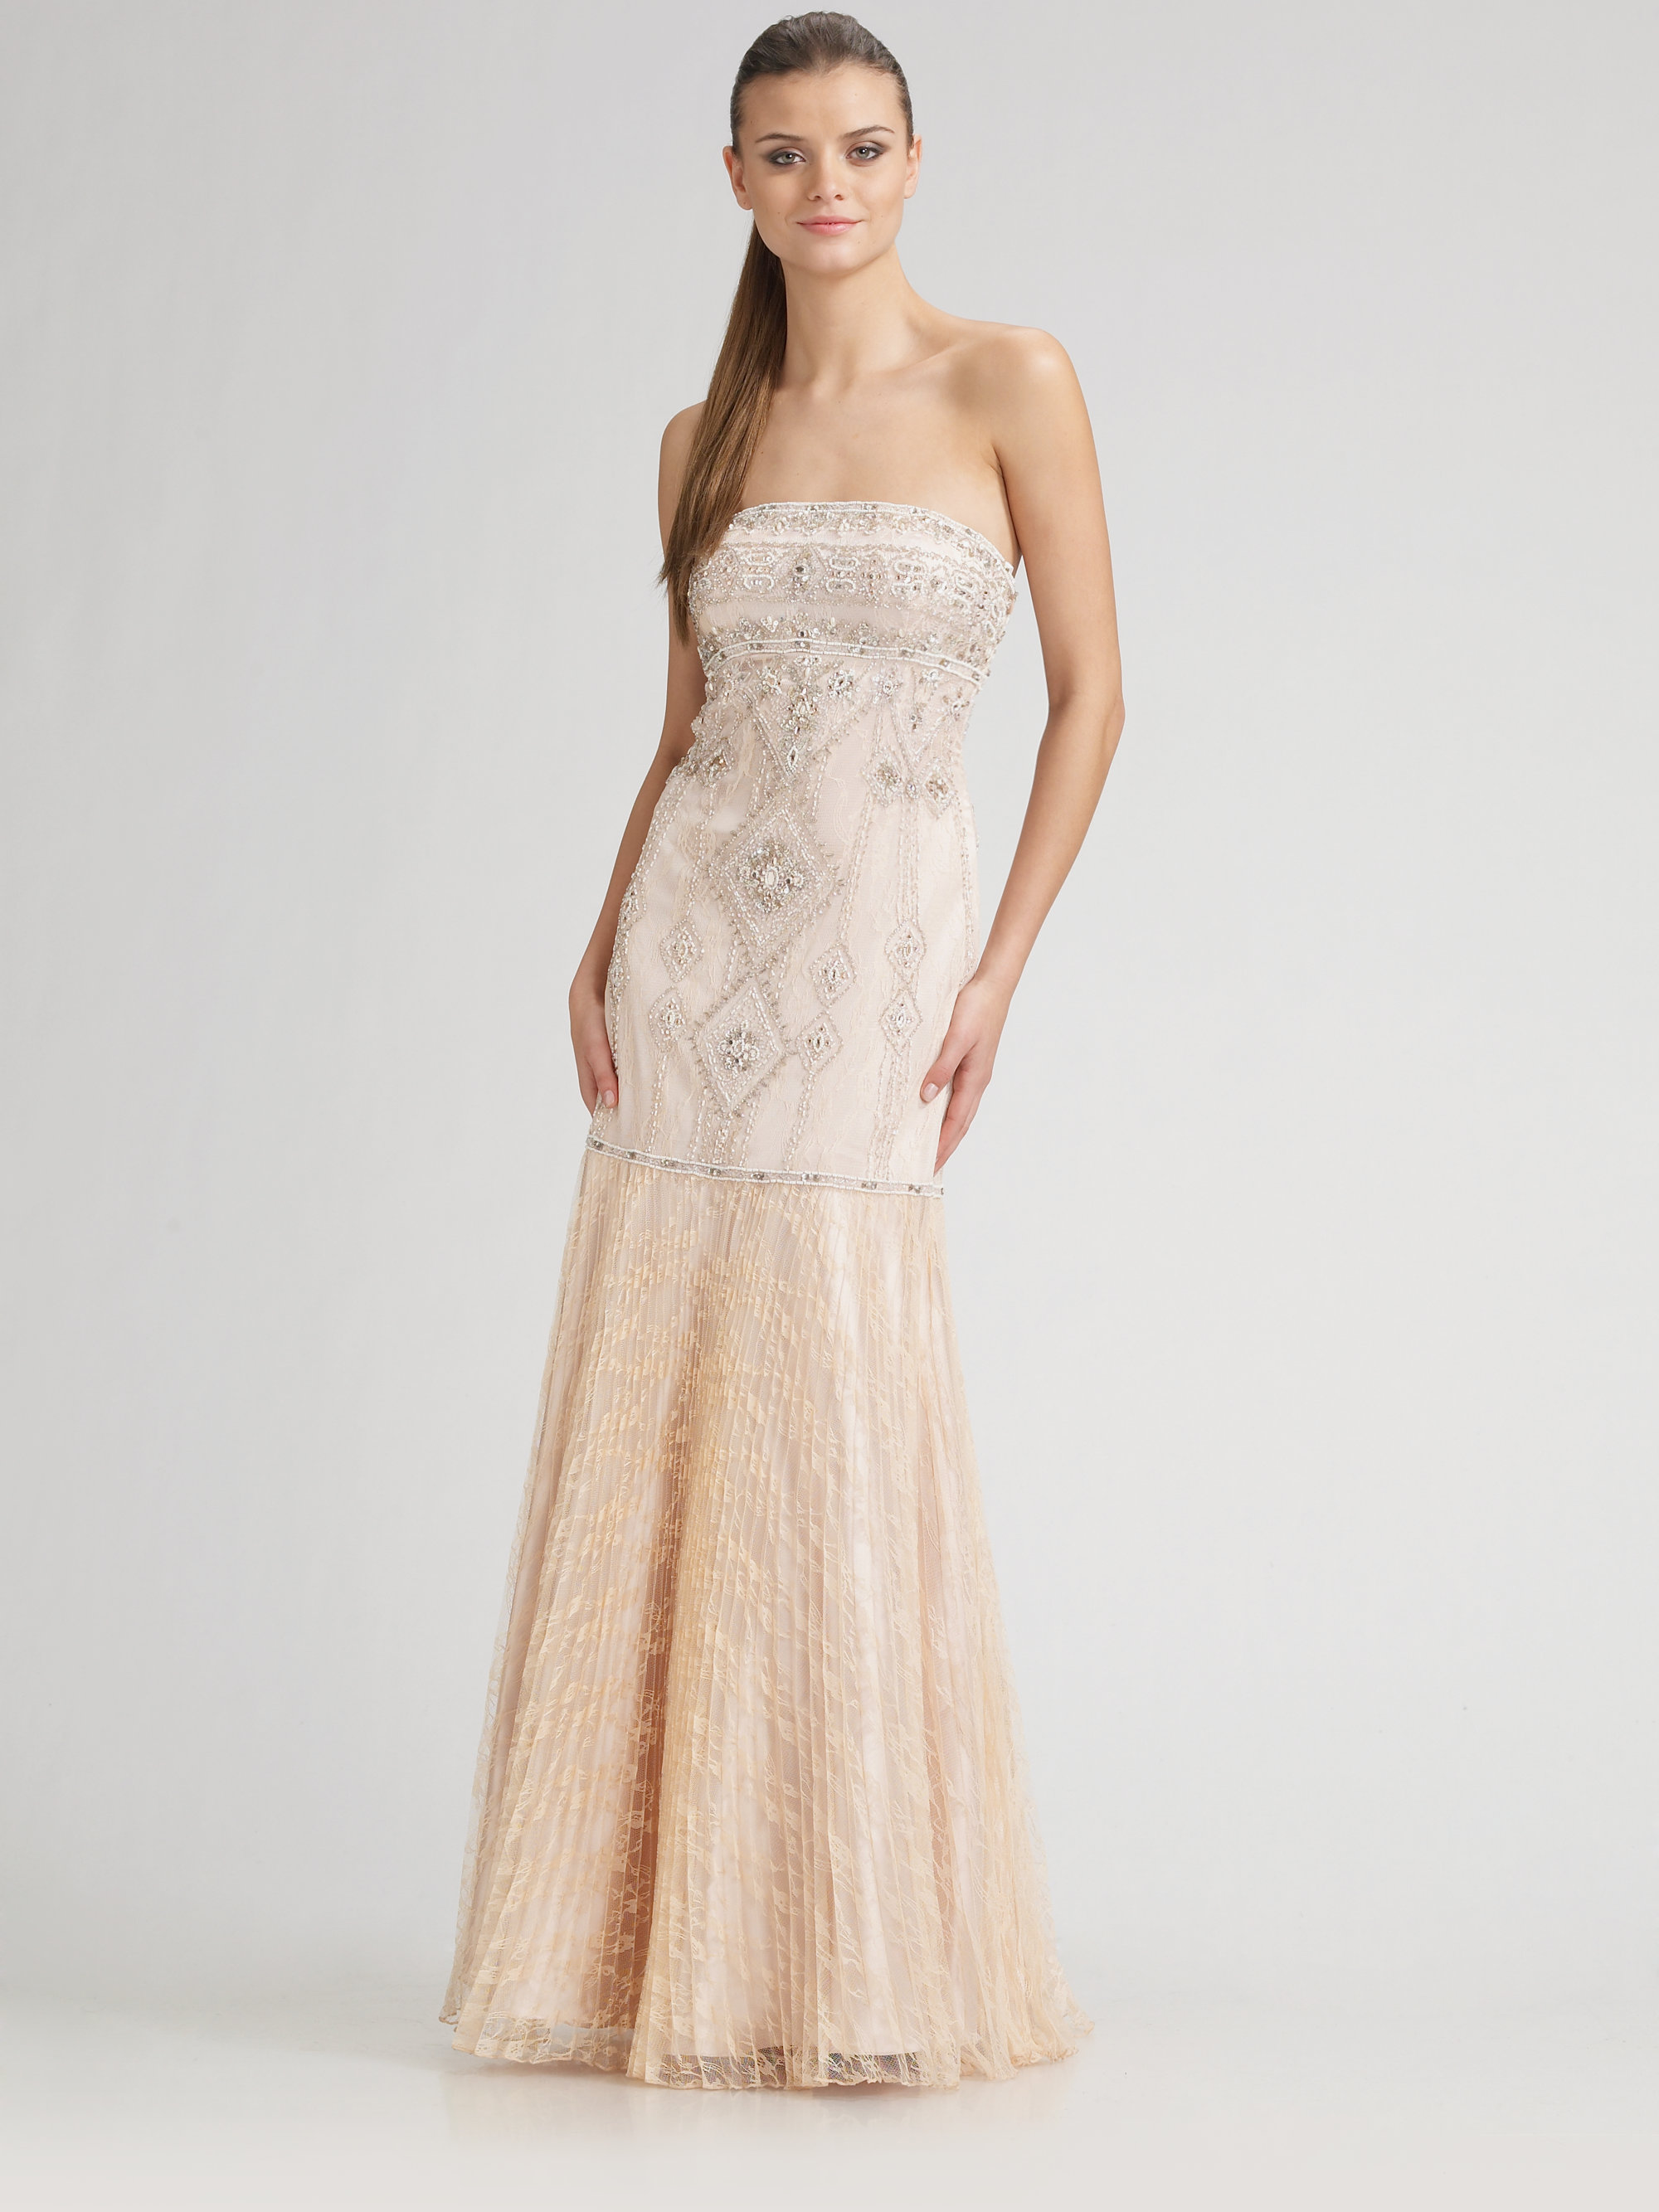 Sue wong Strapless Beaded Gown in Natural - Lyst